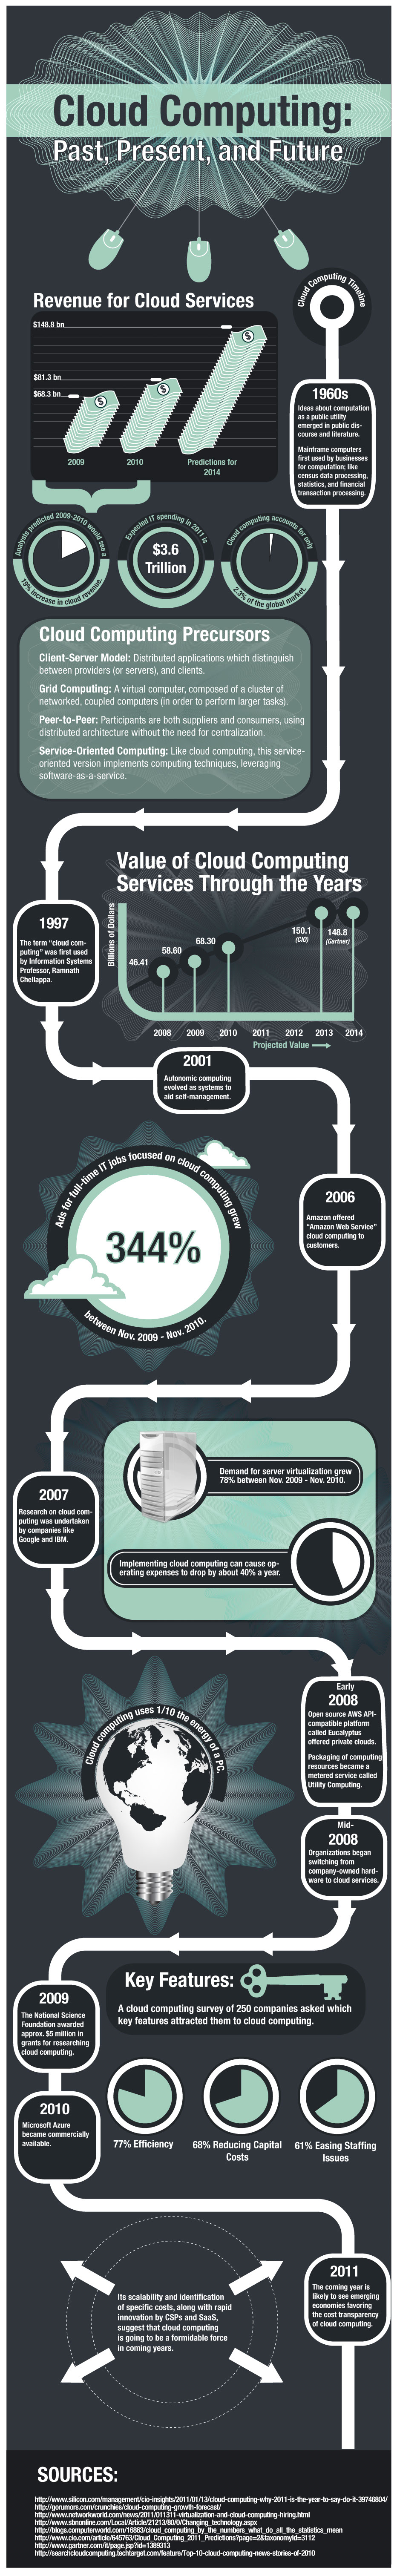 Cloud Computing History-Infographic